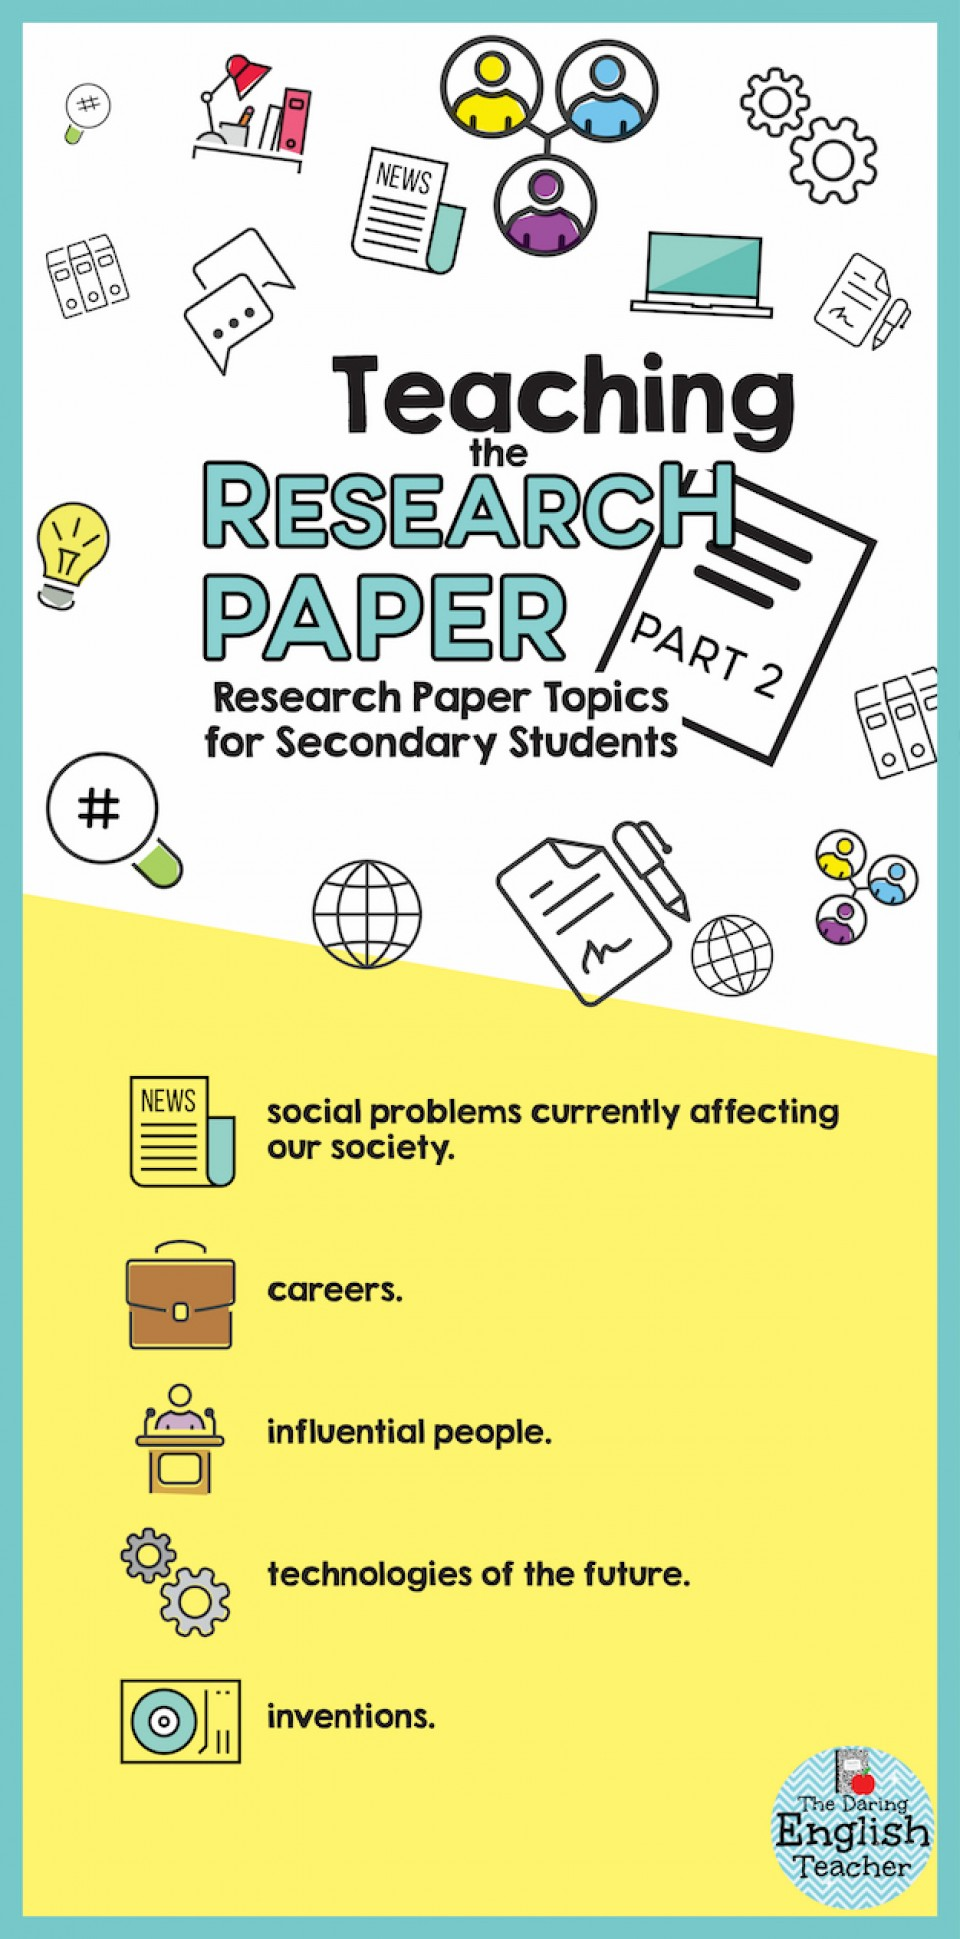 020 Infographic2bp22b2 Research Paper Topic For Unusual A Topics In Criminal Justice Psychology Business Administration 960